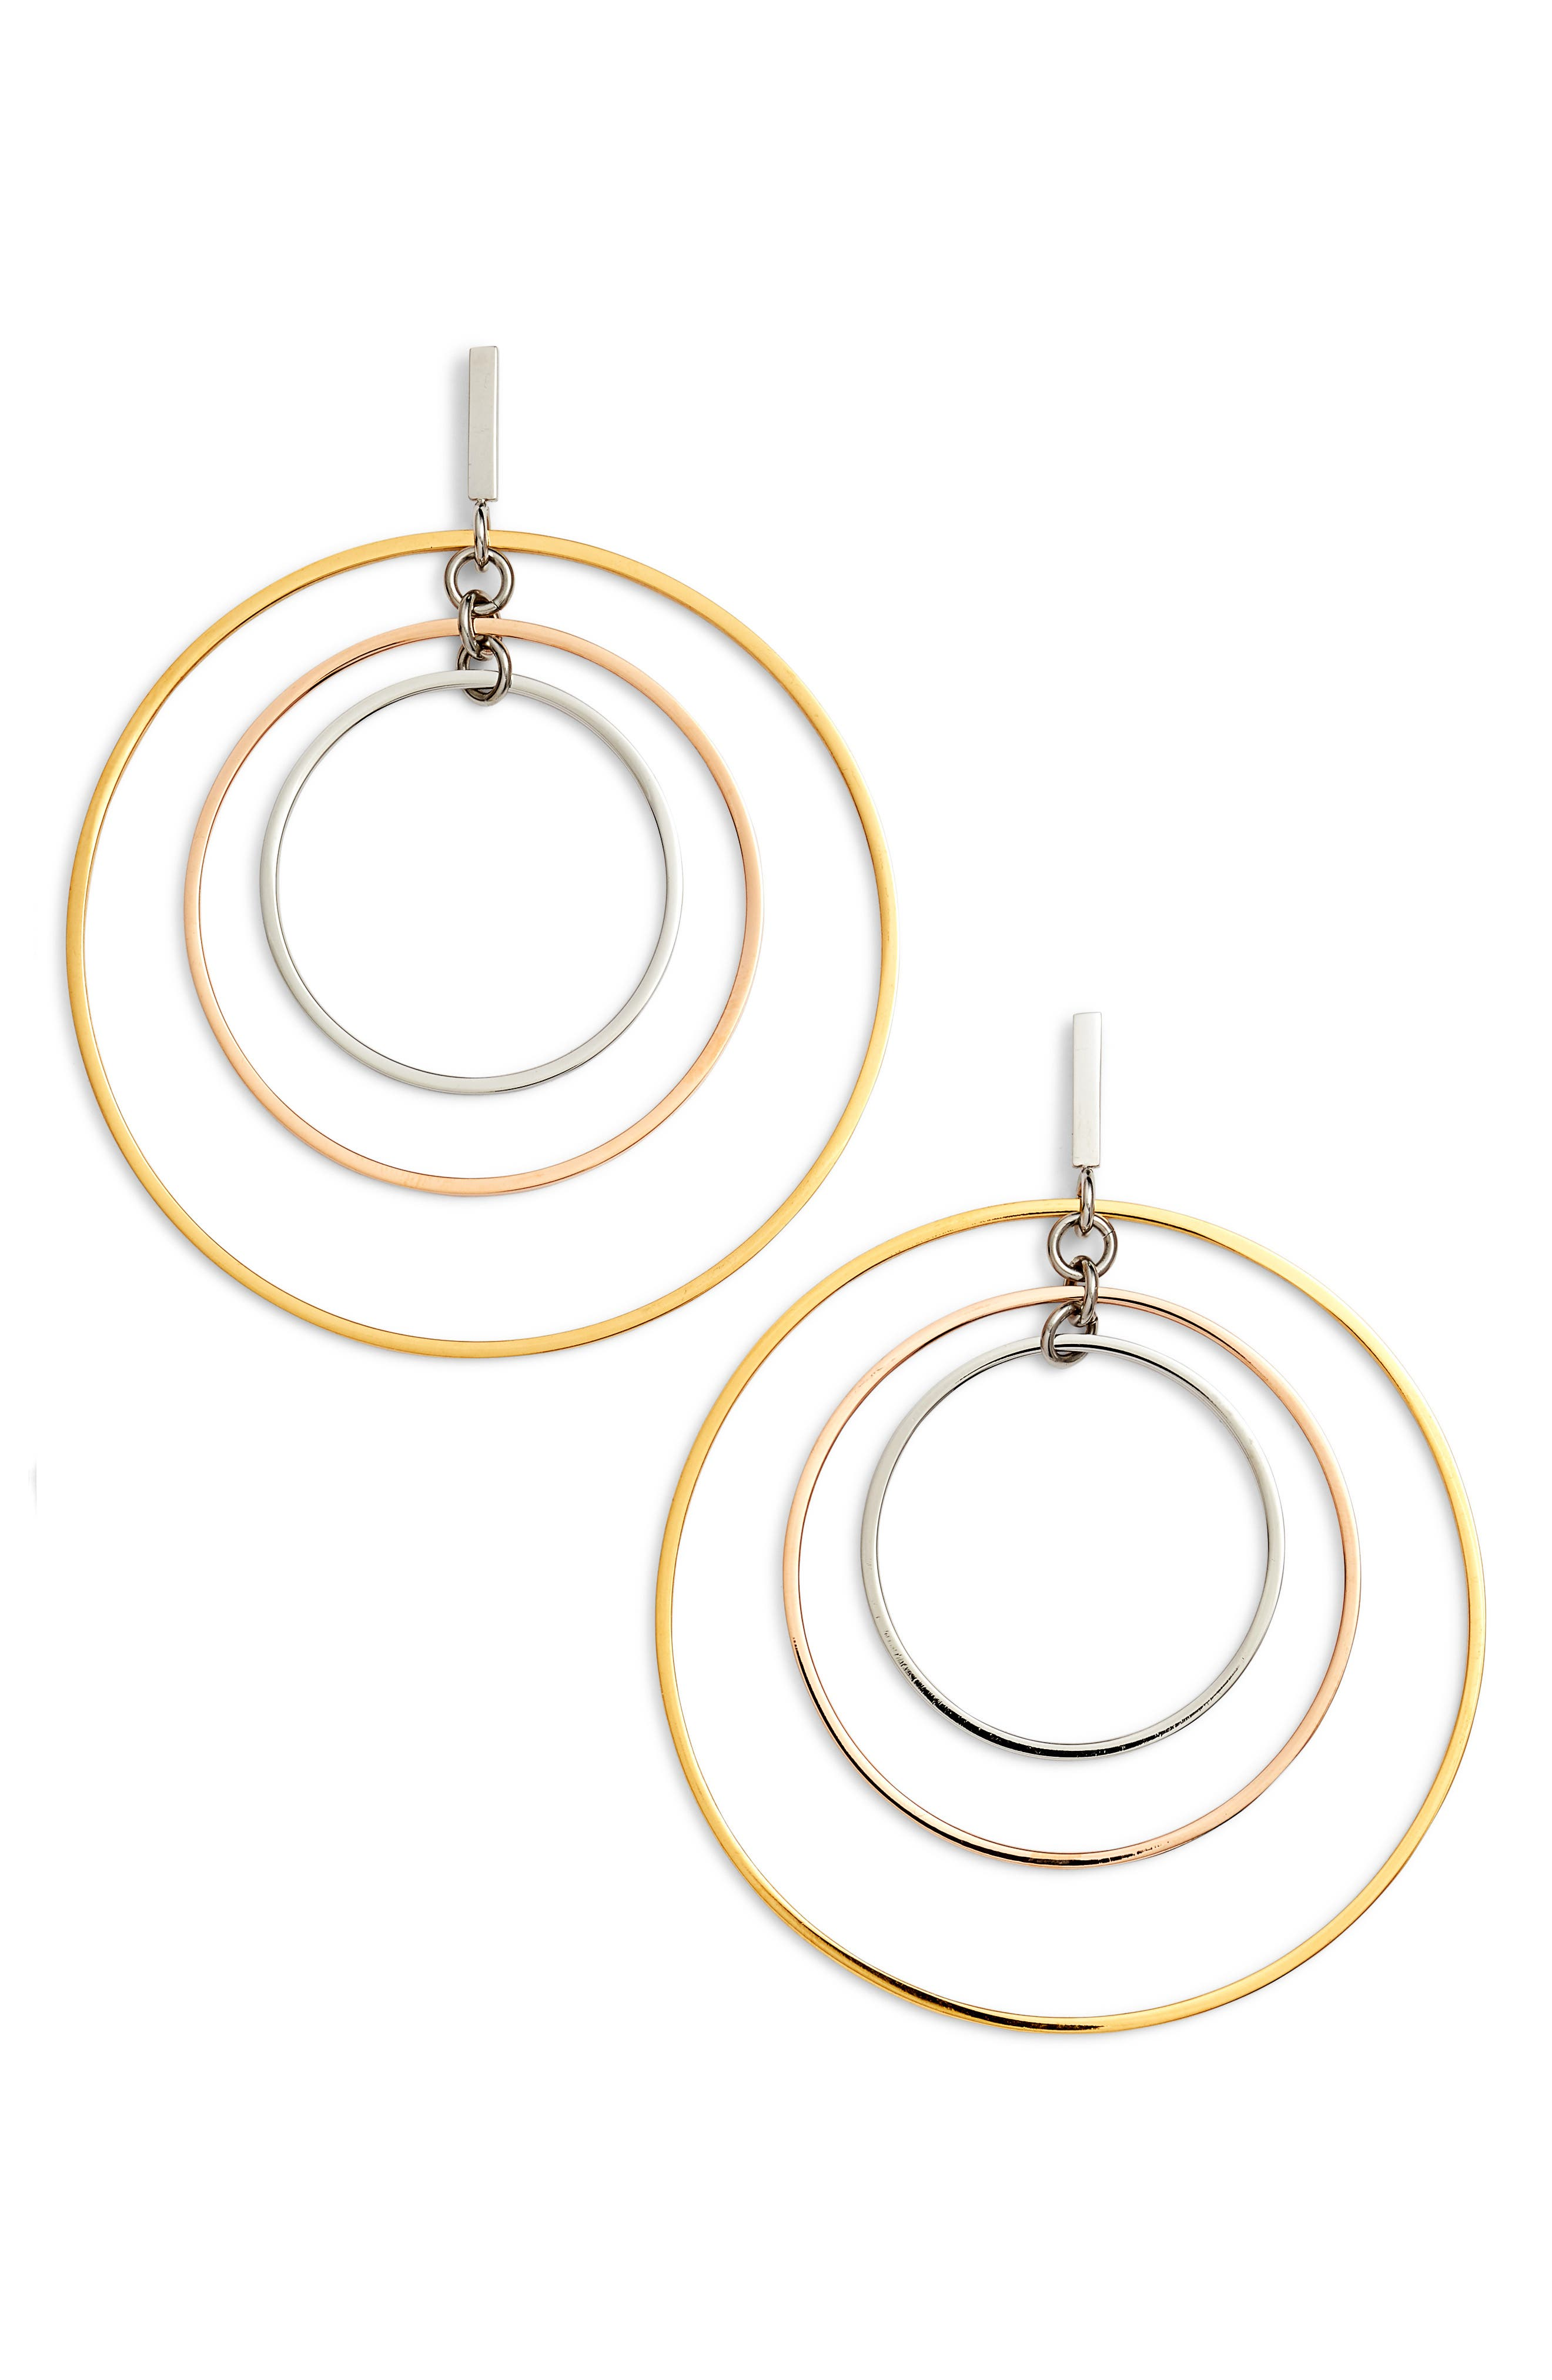 Wire Hoop Earrings,                         Main,                         color, GOLD/ SILVER/ ROSE GOLD